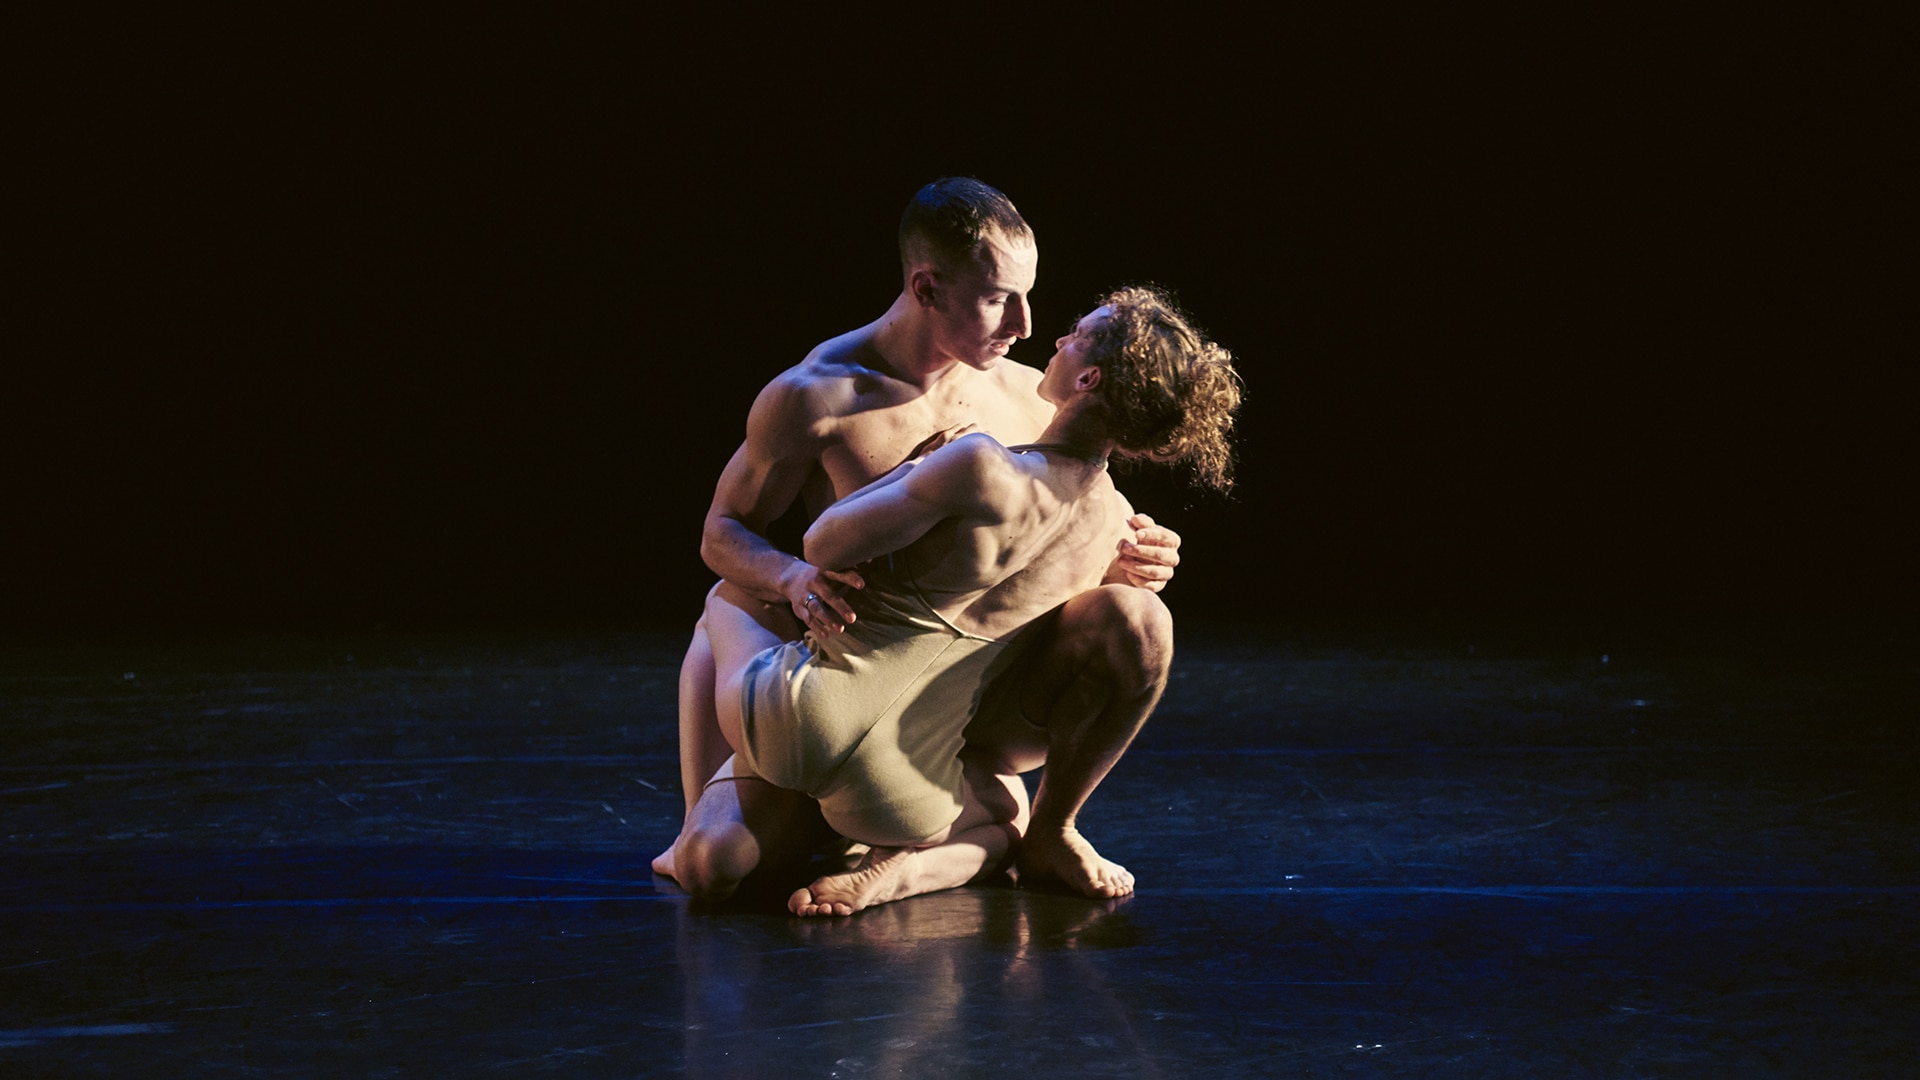 Nikki Rummer and JD Broussé gaze at each other, while crouching on the stage and holding one another